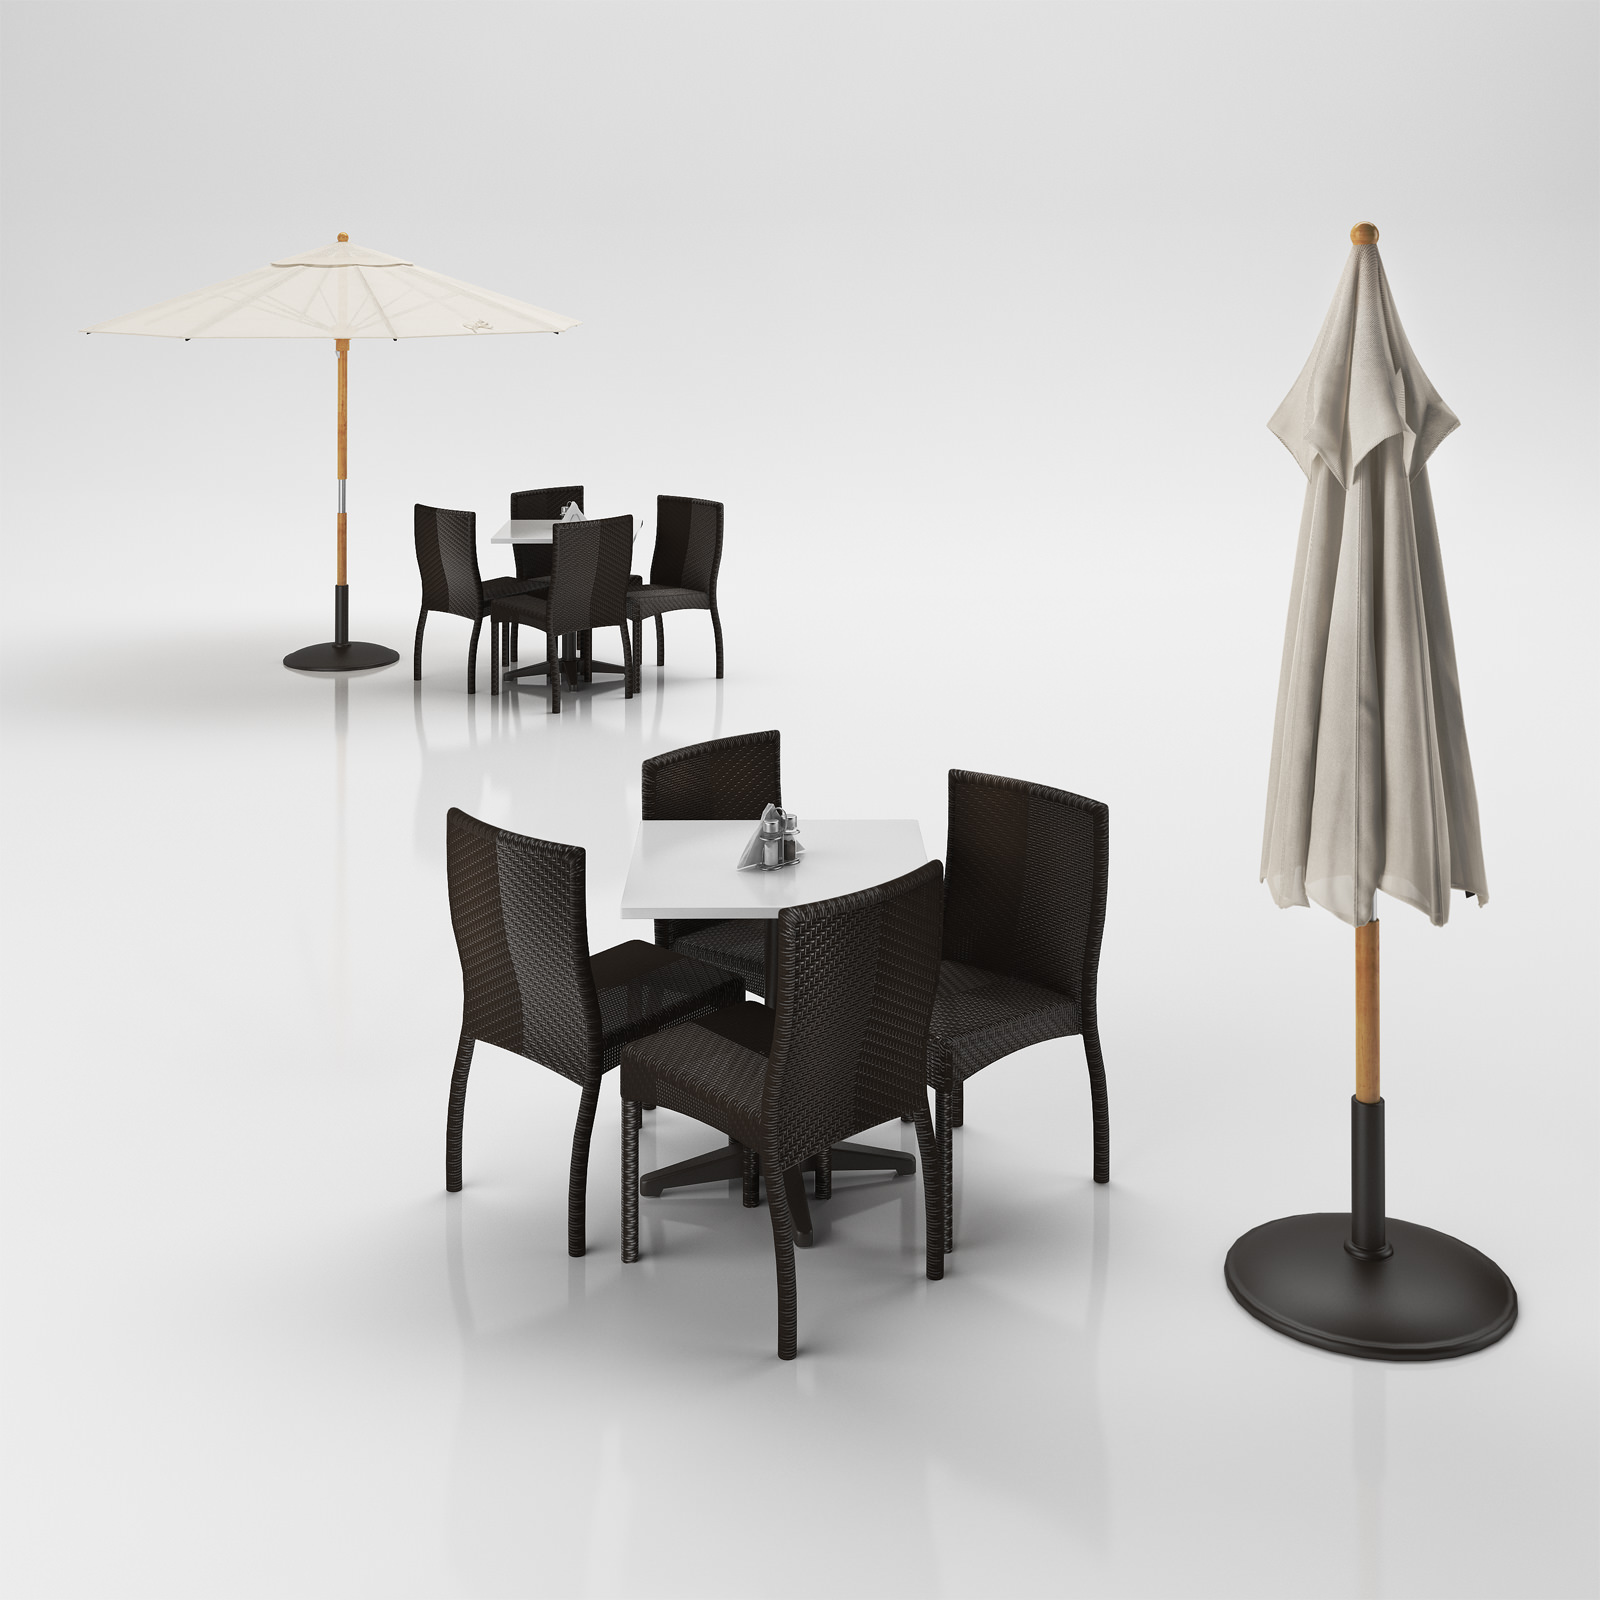 Rattan Chairs Rattan Chairs Set With Table And Outdoor Umbrella 3d Model